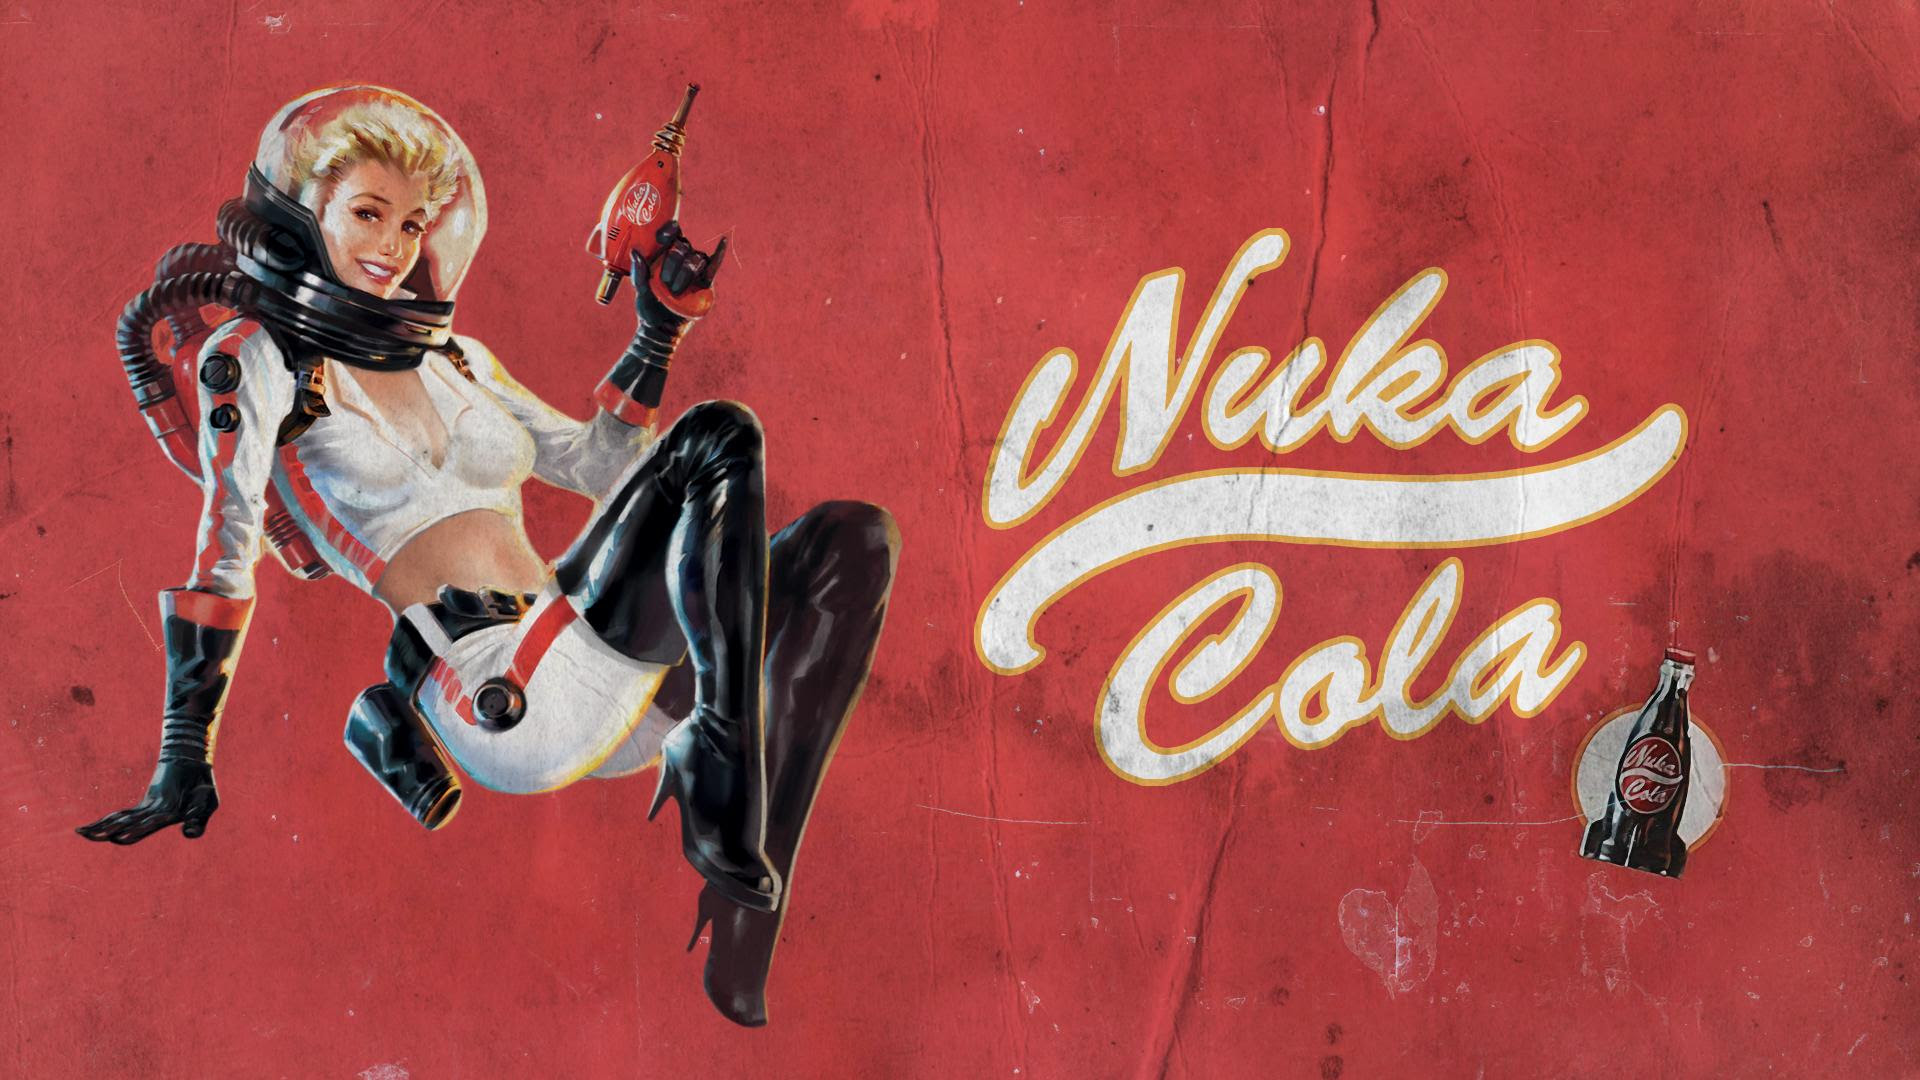 Fixed Up The Nuka Girl Pinup Wallpaper Fo4